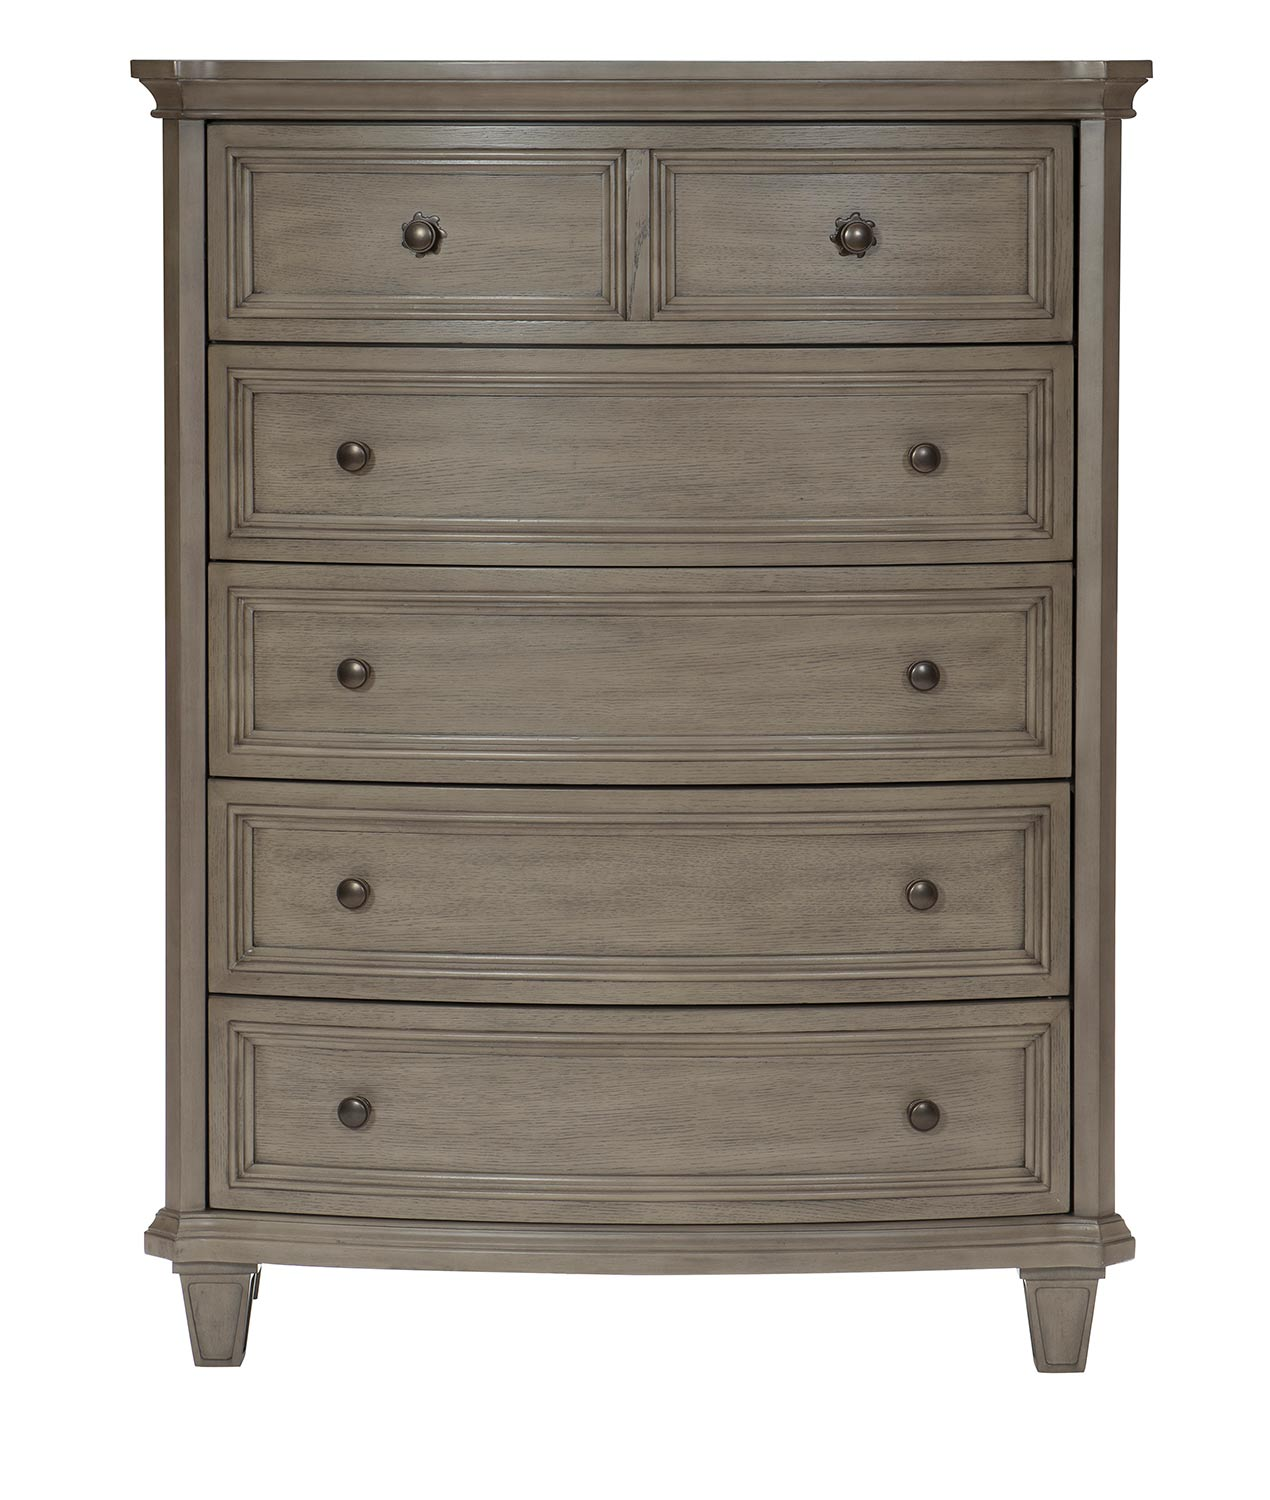 Homelegance Vermillion Chest - Bisque Finish with Oak Veneer